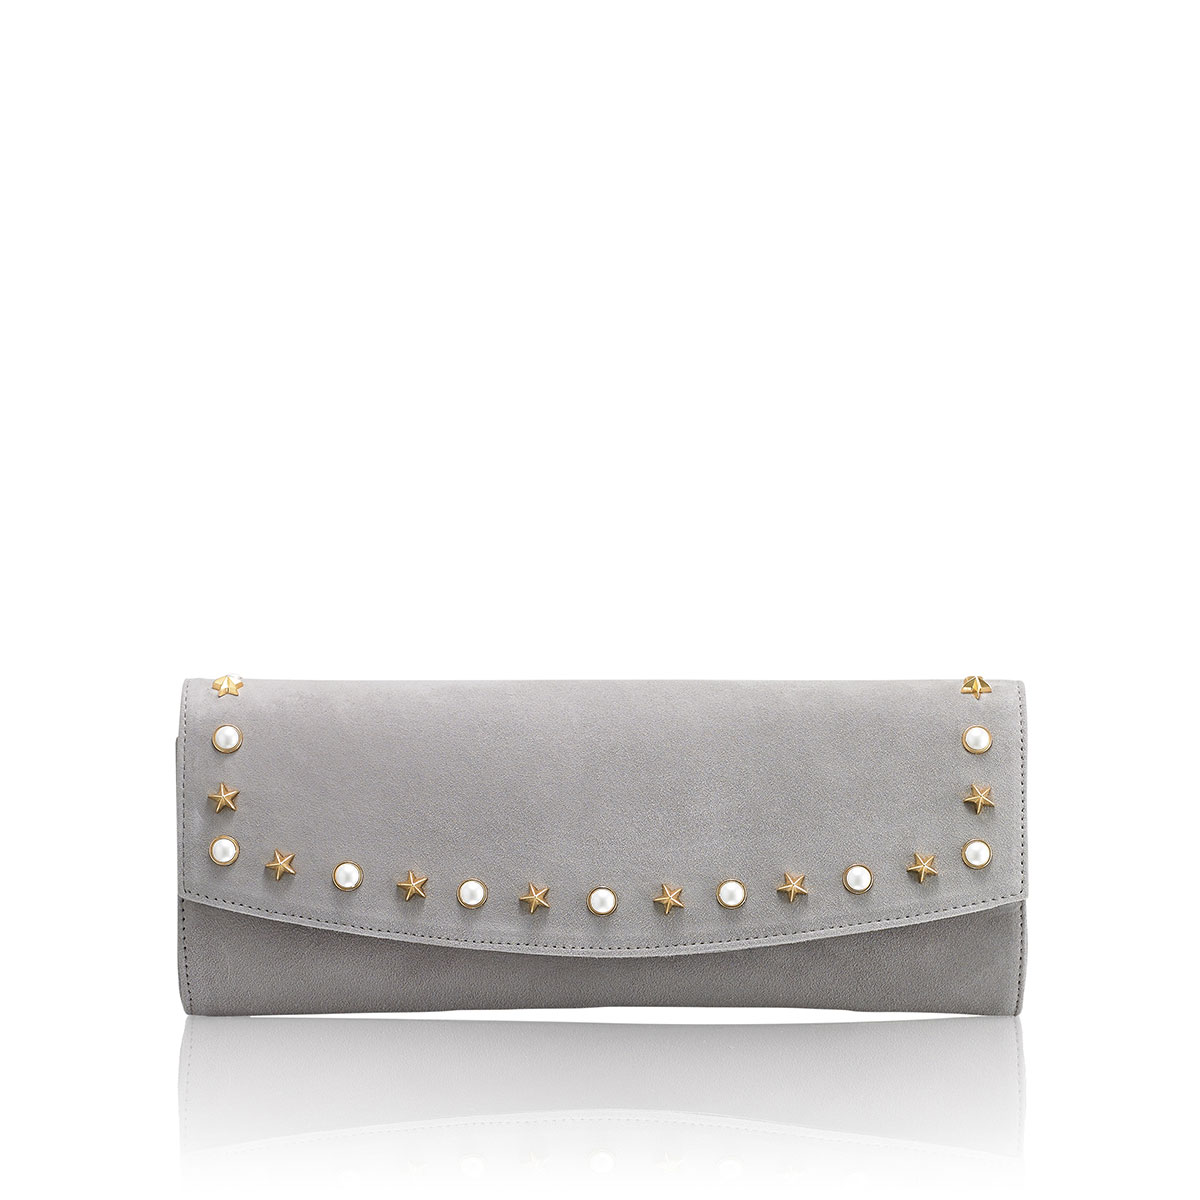 Russell And Bromley DOHIKEY Embellished Clutch